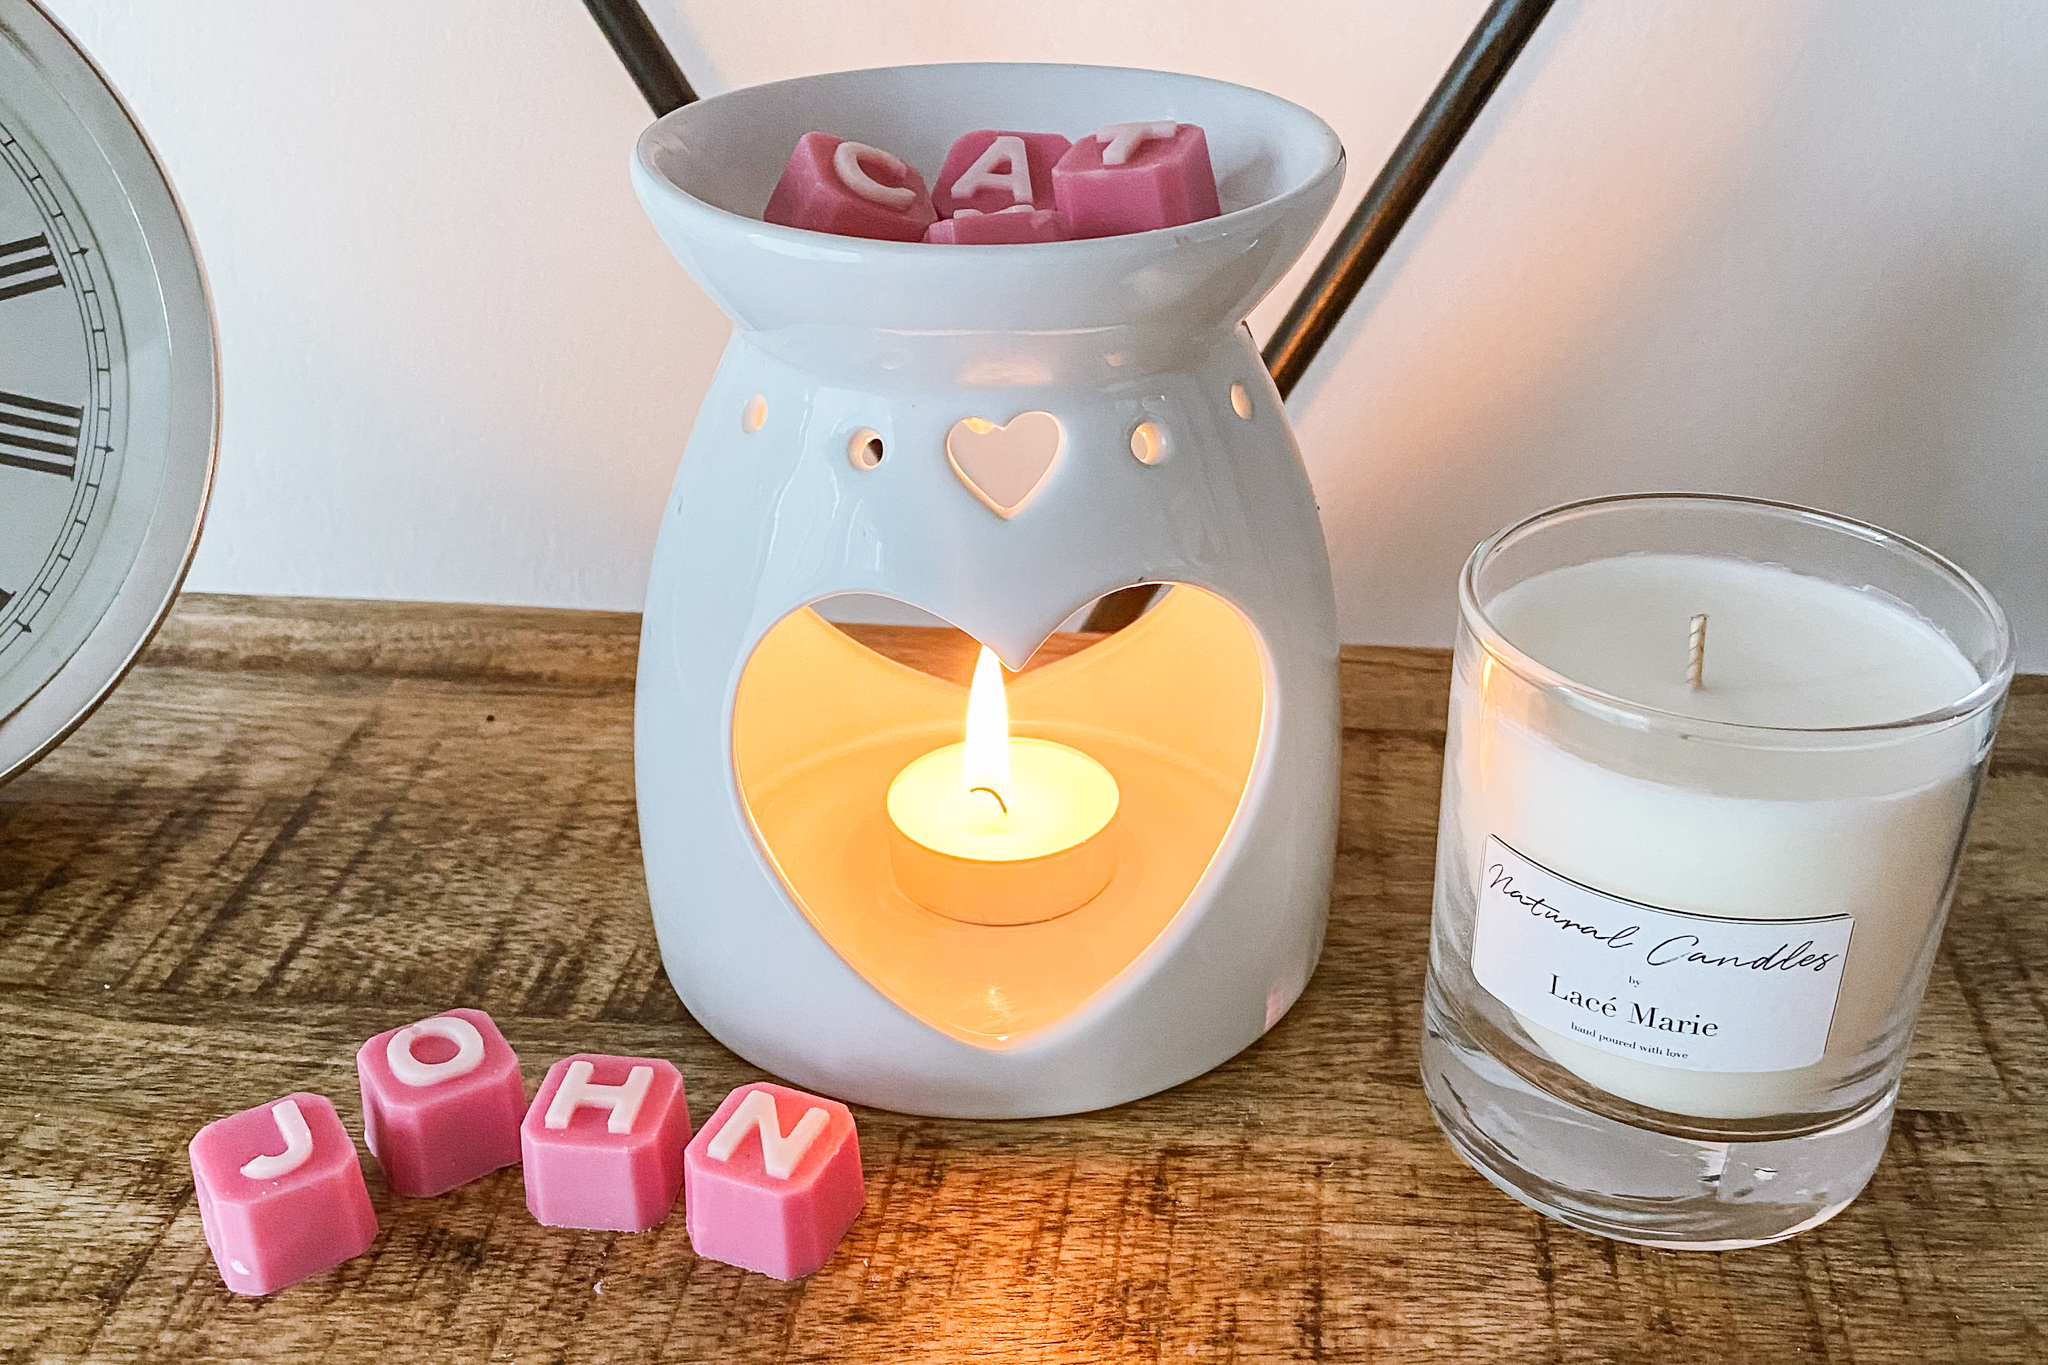 Wax melter with wax melts and a candle next to it.